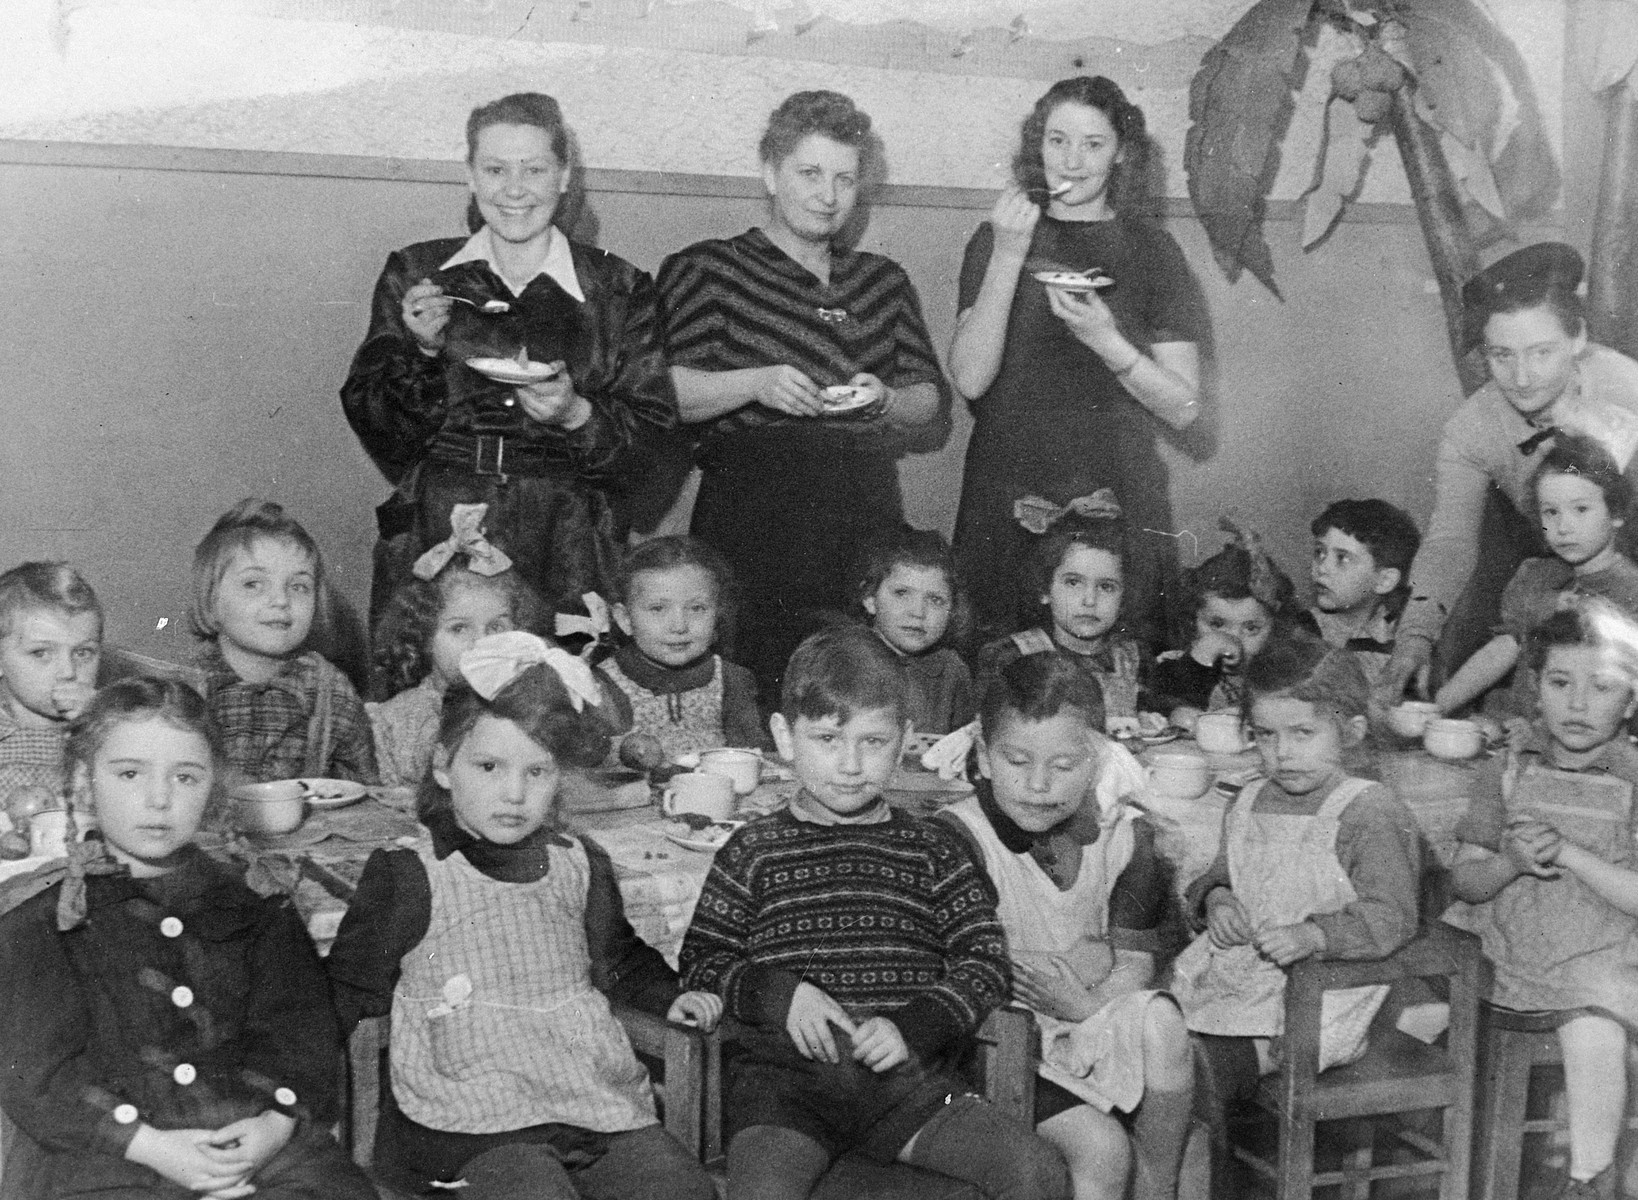 Group portrait of Jewish kindergarten children sitting around a table for a celebration in Lodz after the war.  Among those pictured is a teacher, Rachel Grynfeld (standing on the left).